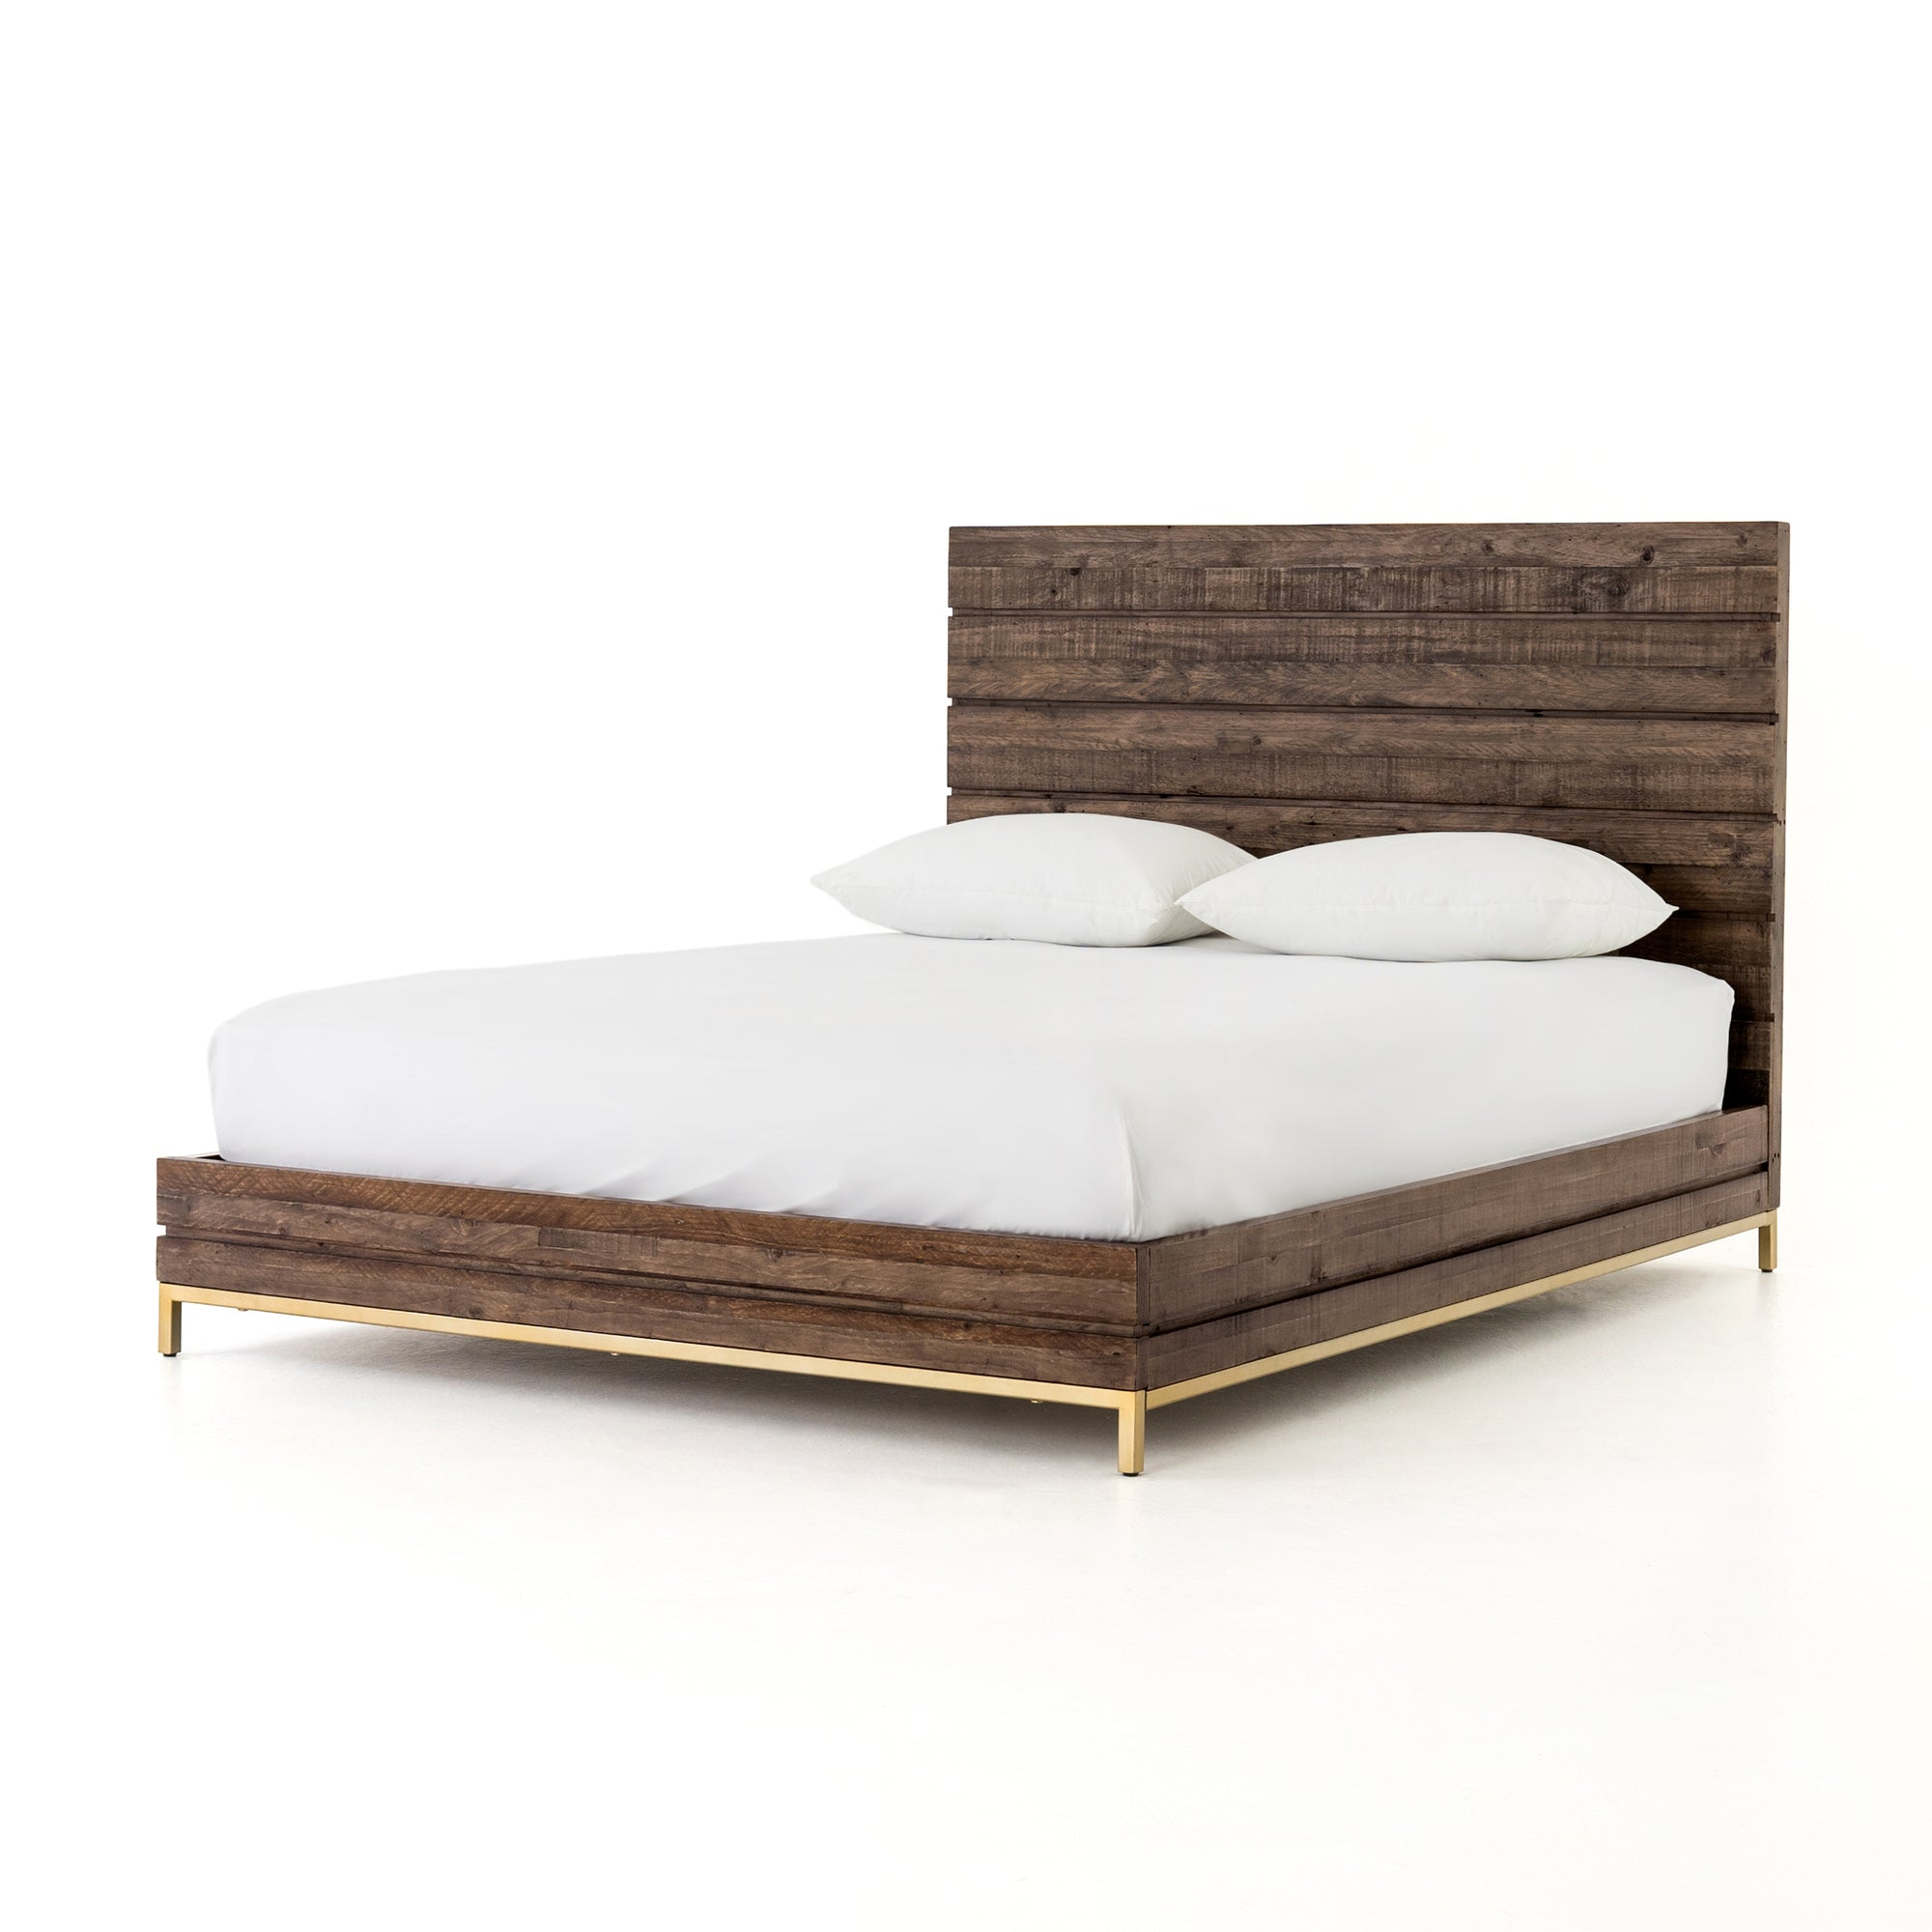 Tiller Queen Bed - Vintage Brown